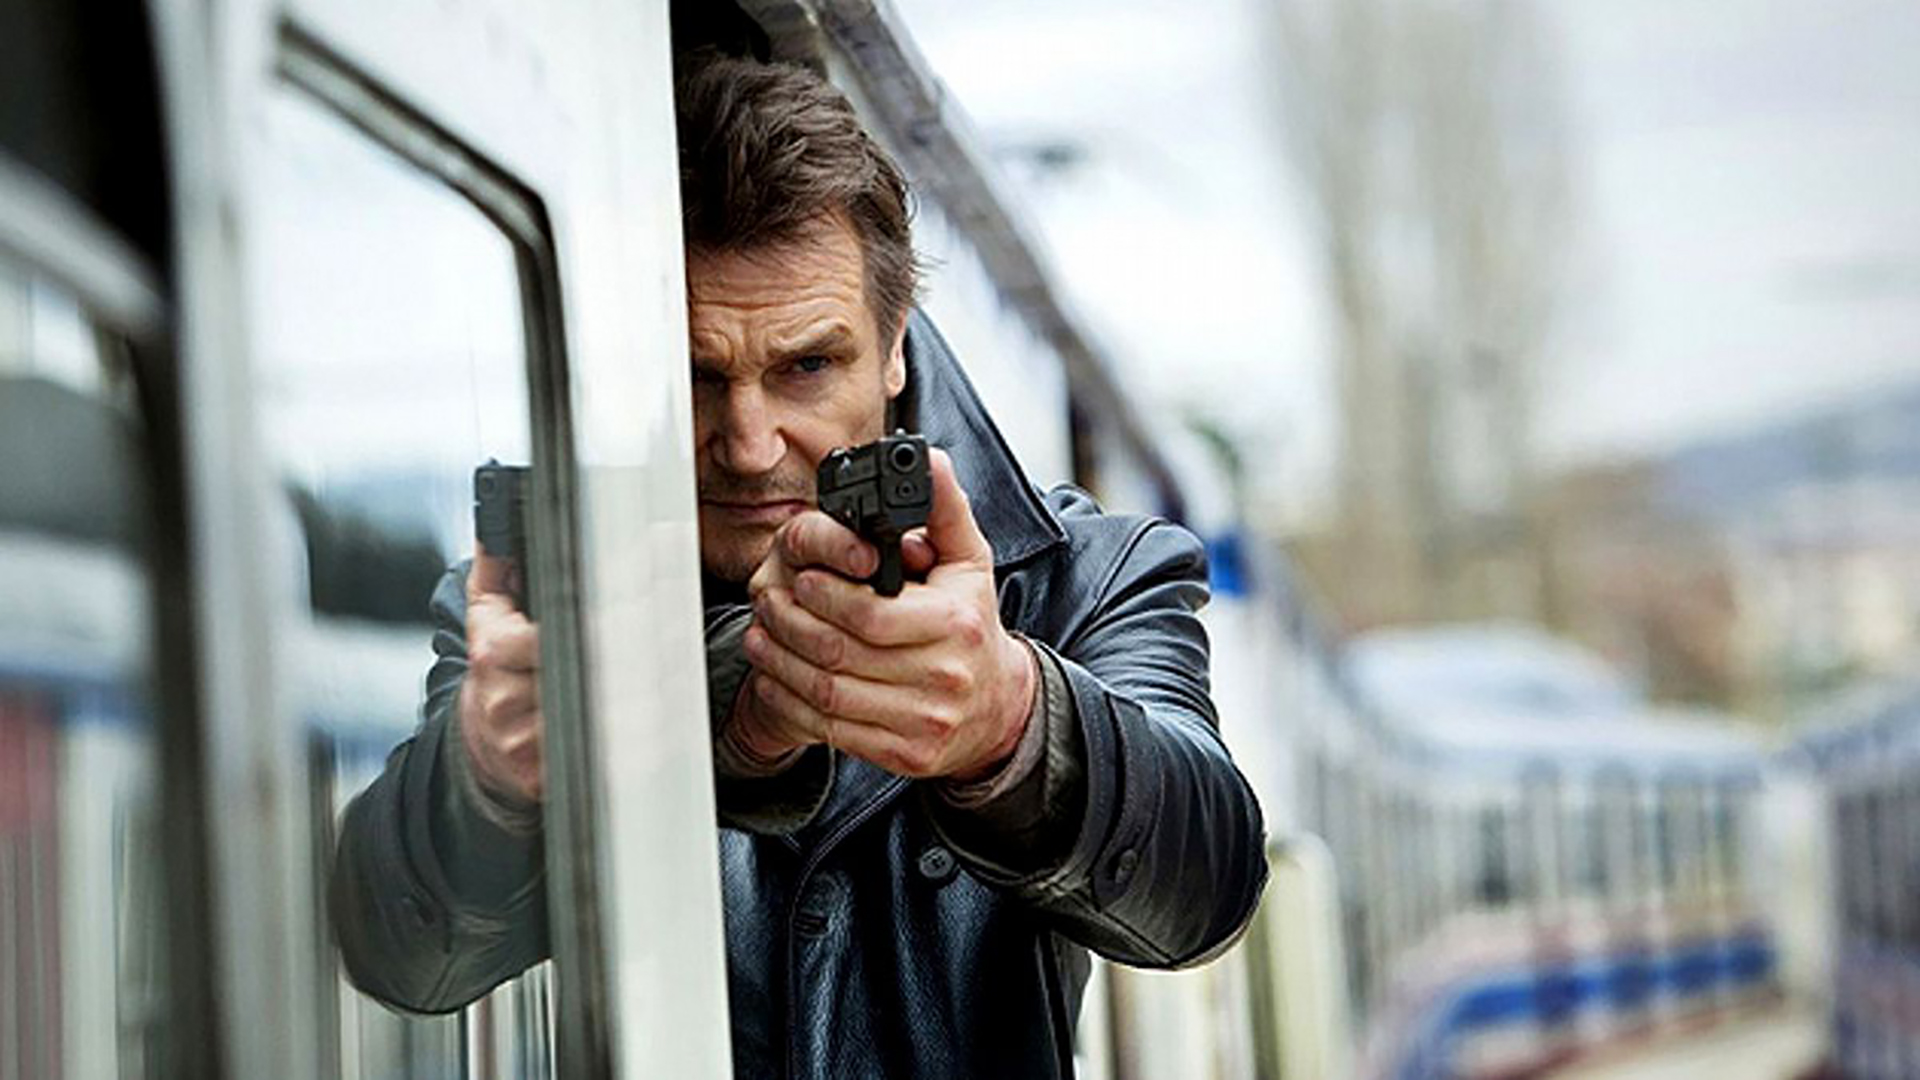 'The Commuter' - Liam Neeson continues to use his 'special set of skills'